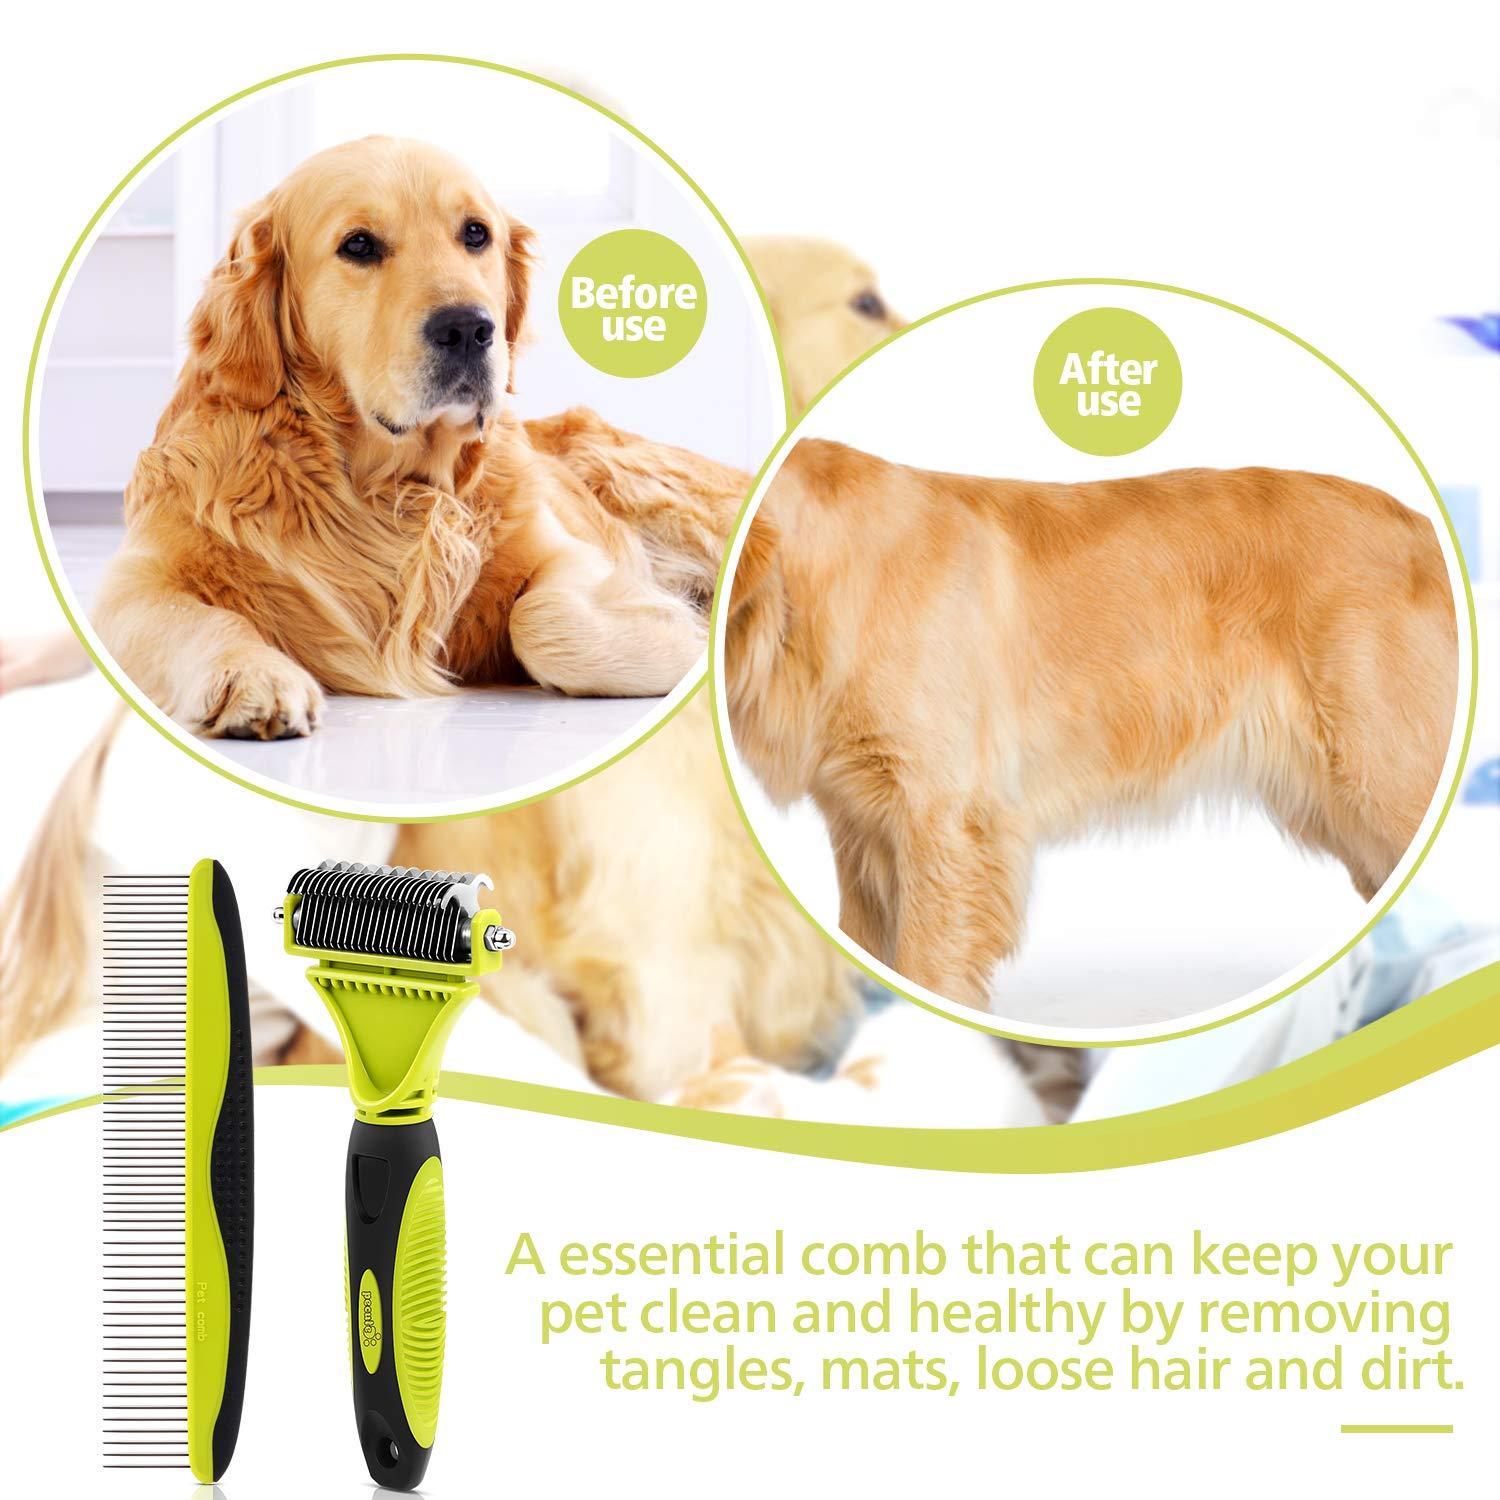 Pecute Grooming Dematting Comb Tool Kit for Pet